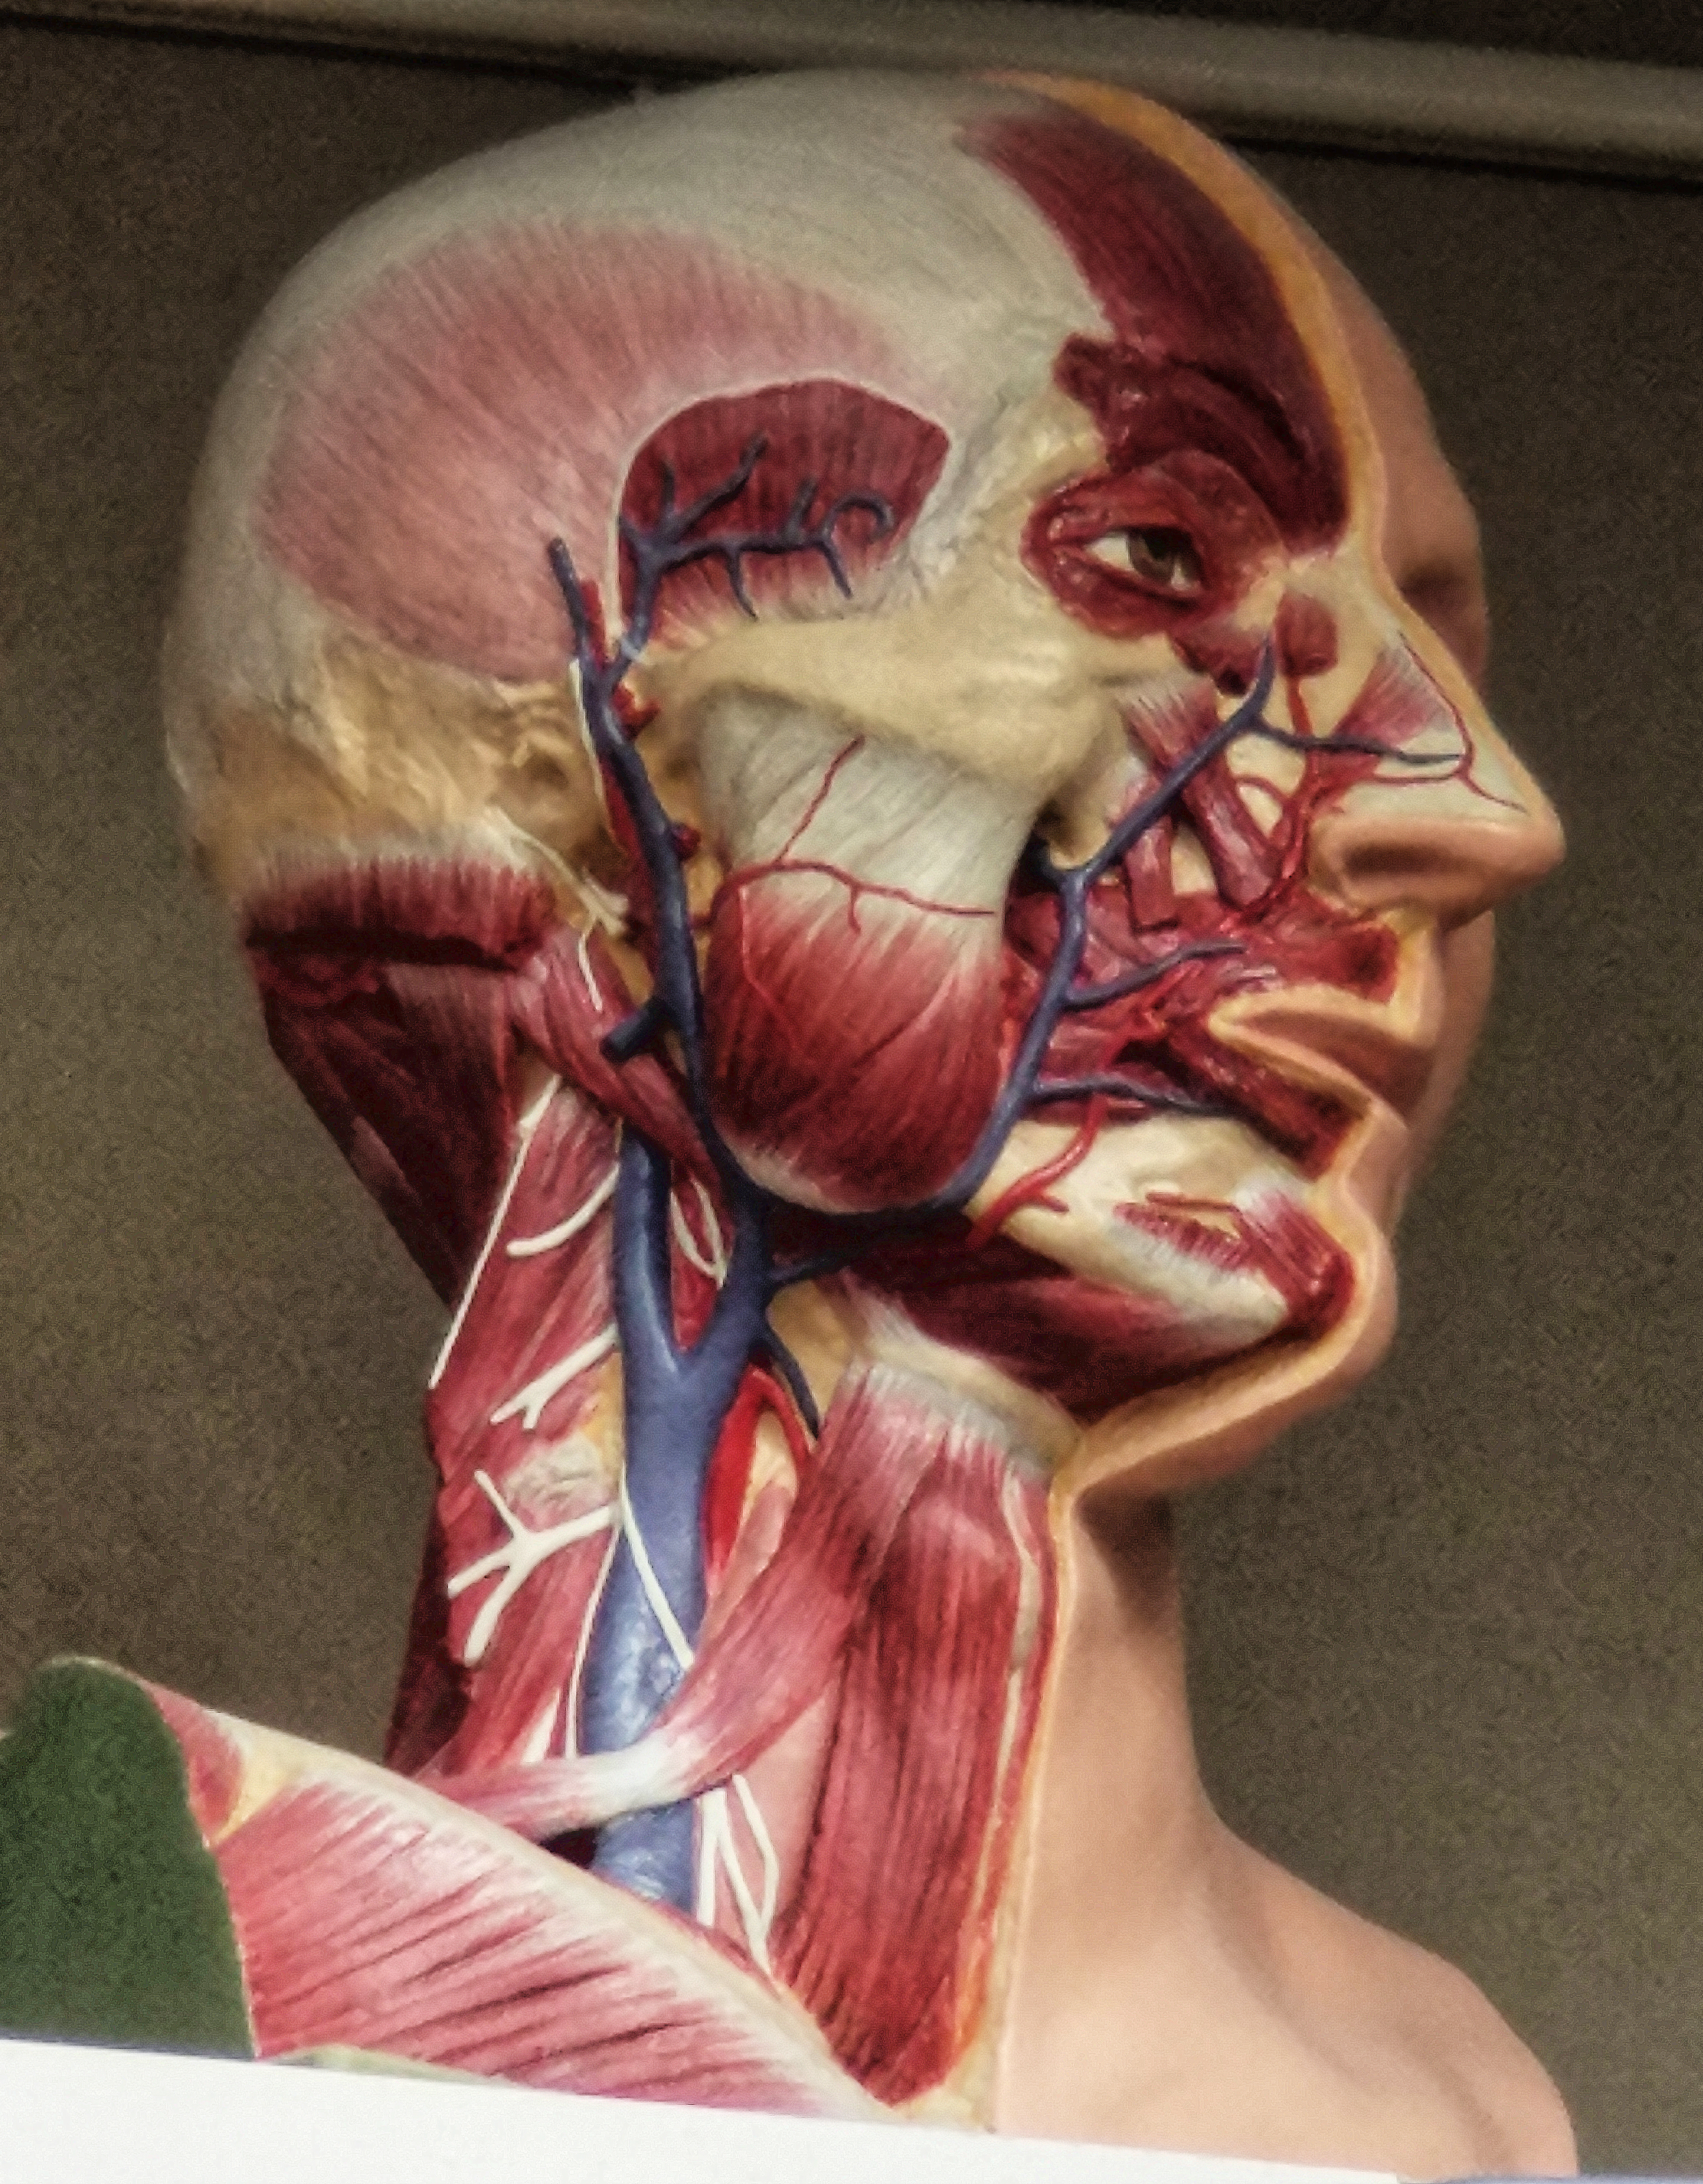 Anatomy Head Disection Level Two. Anatomical Head surface anatomy Dissection from life 1917-1920